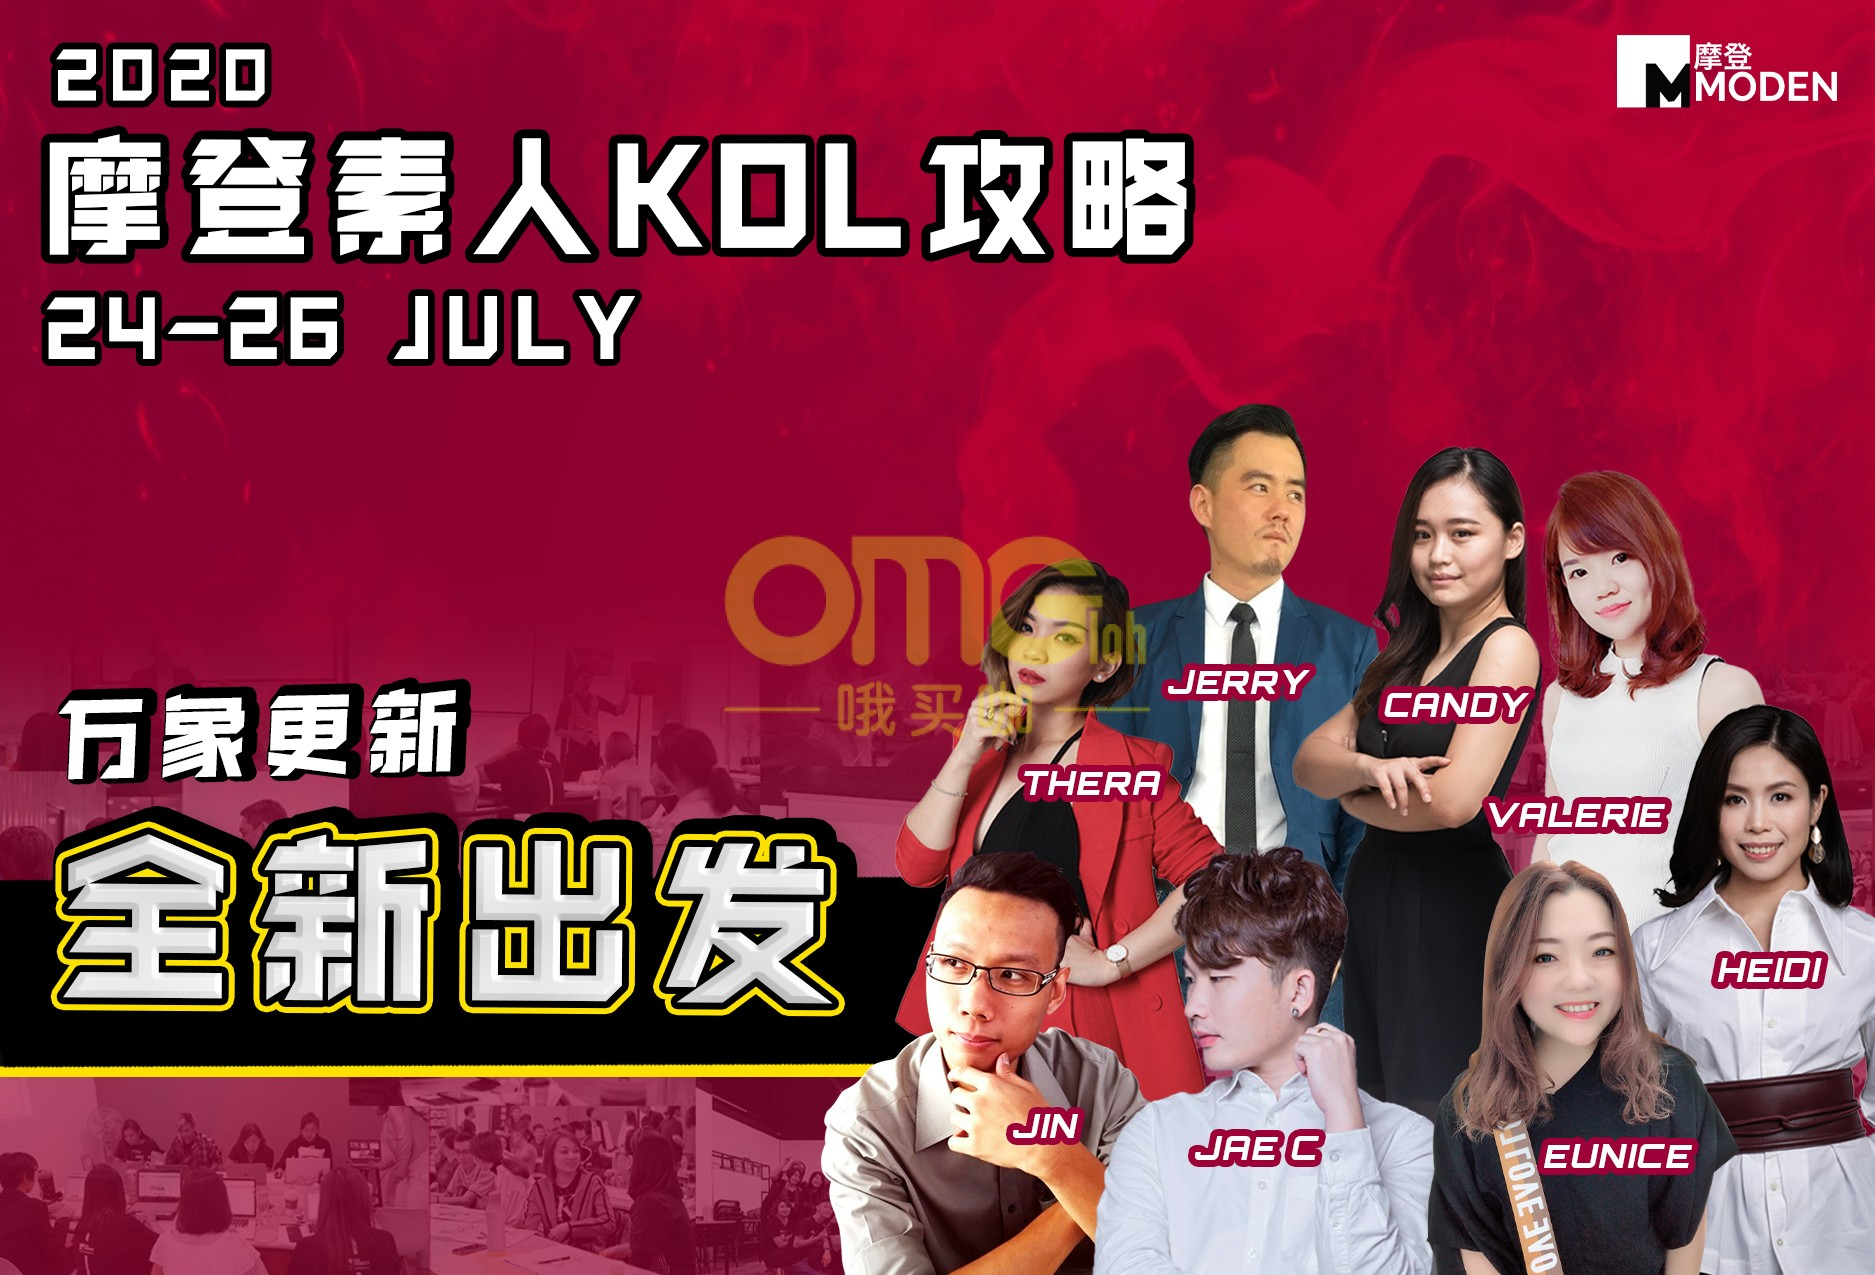 6.1 banner 1 at omgloh.com